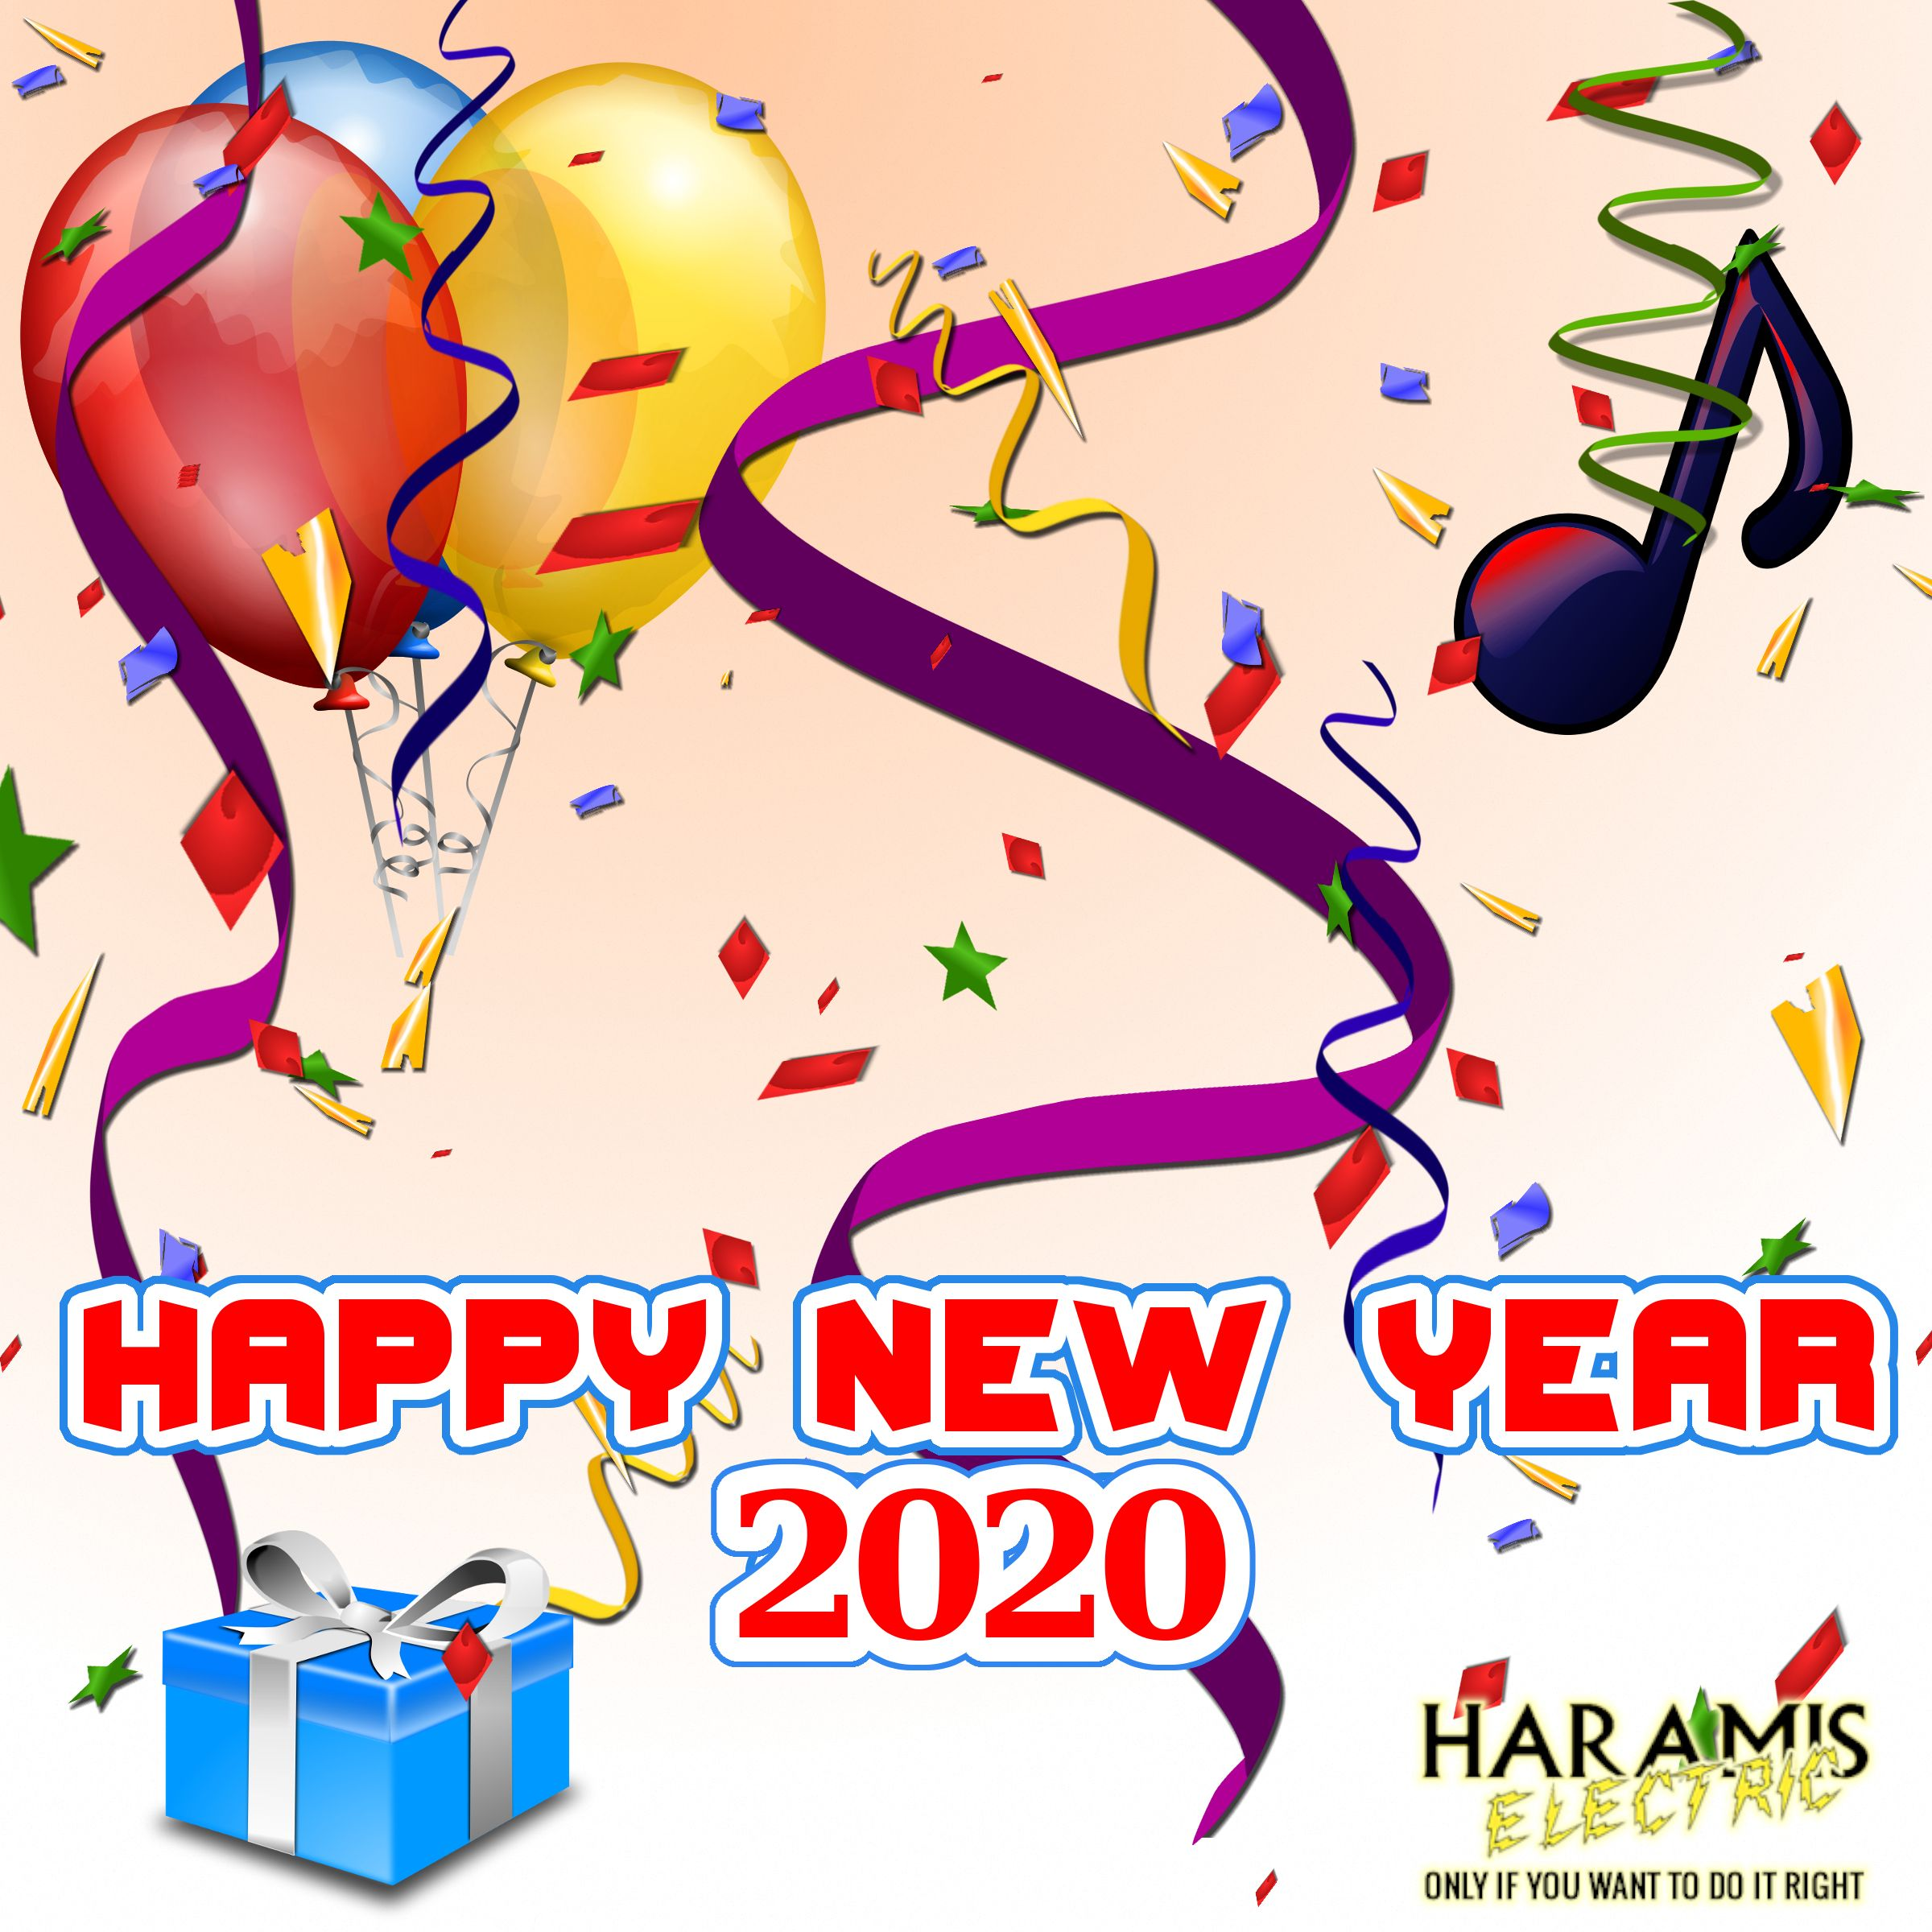 Hope everyone has a great 2020 in 2020 Happy year, Happy